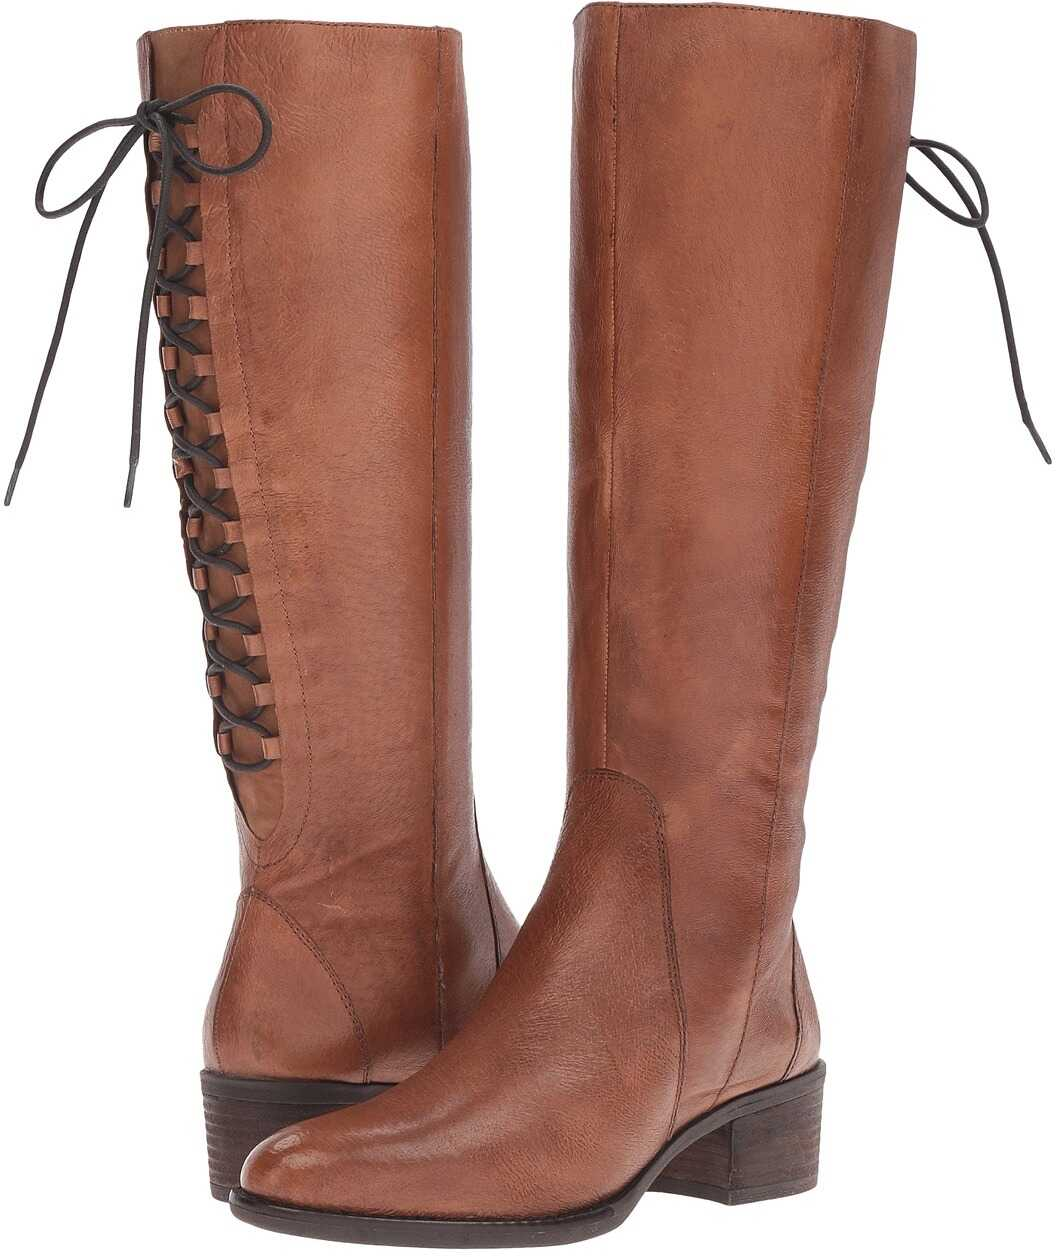 Steve Madden Laceupp Cognac Leather